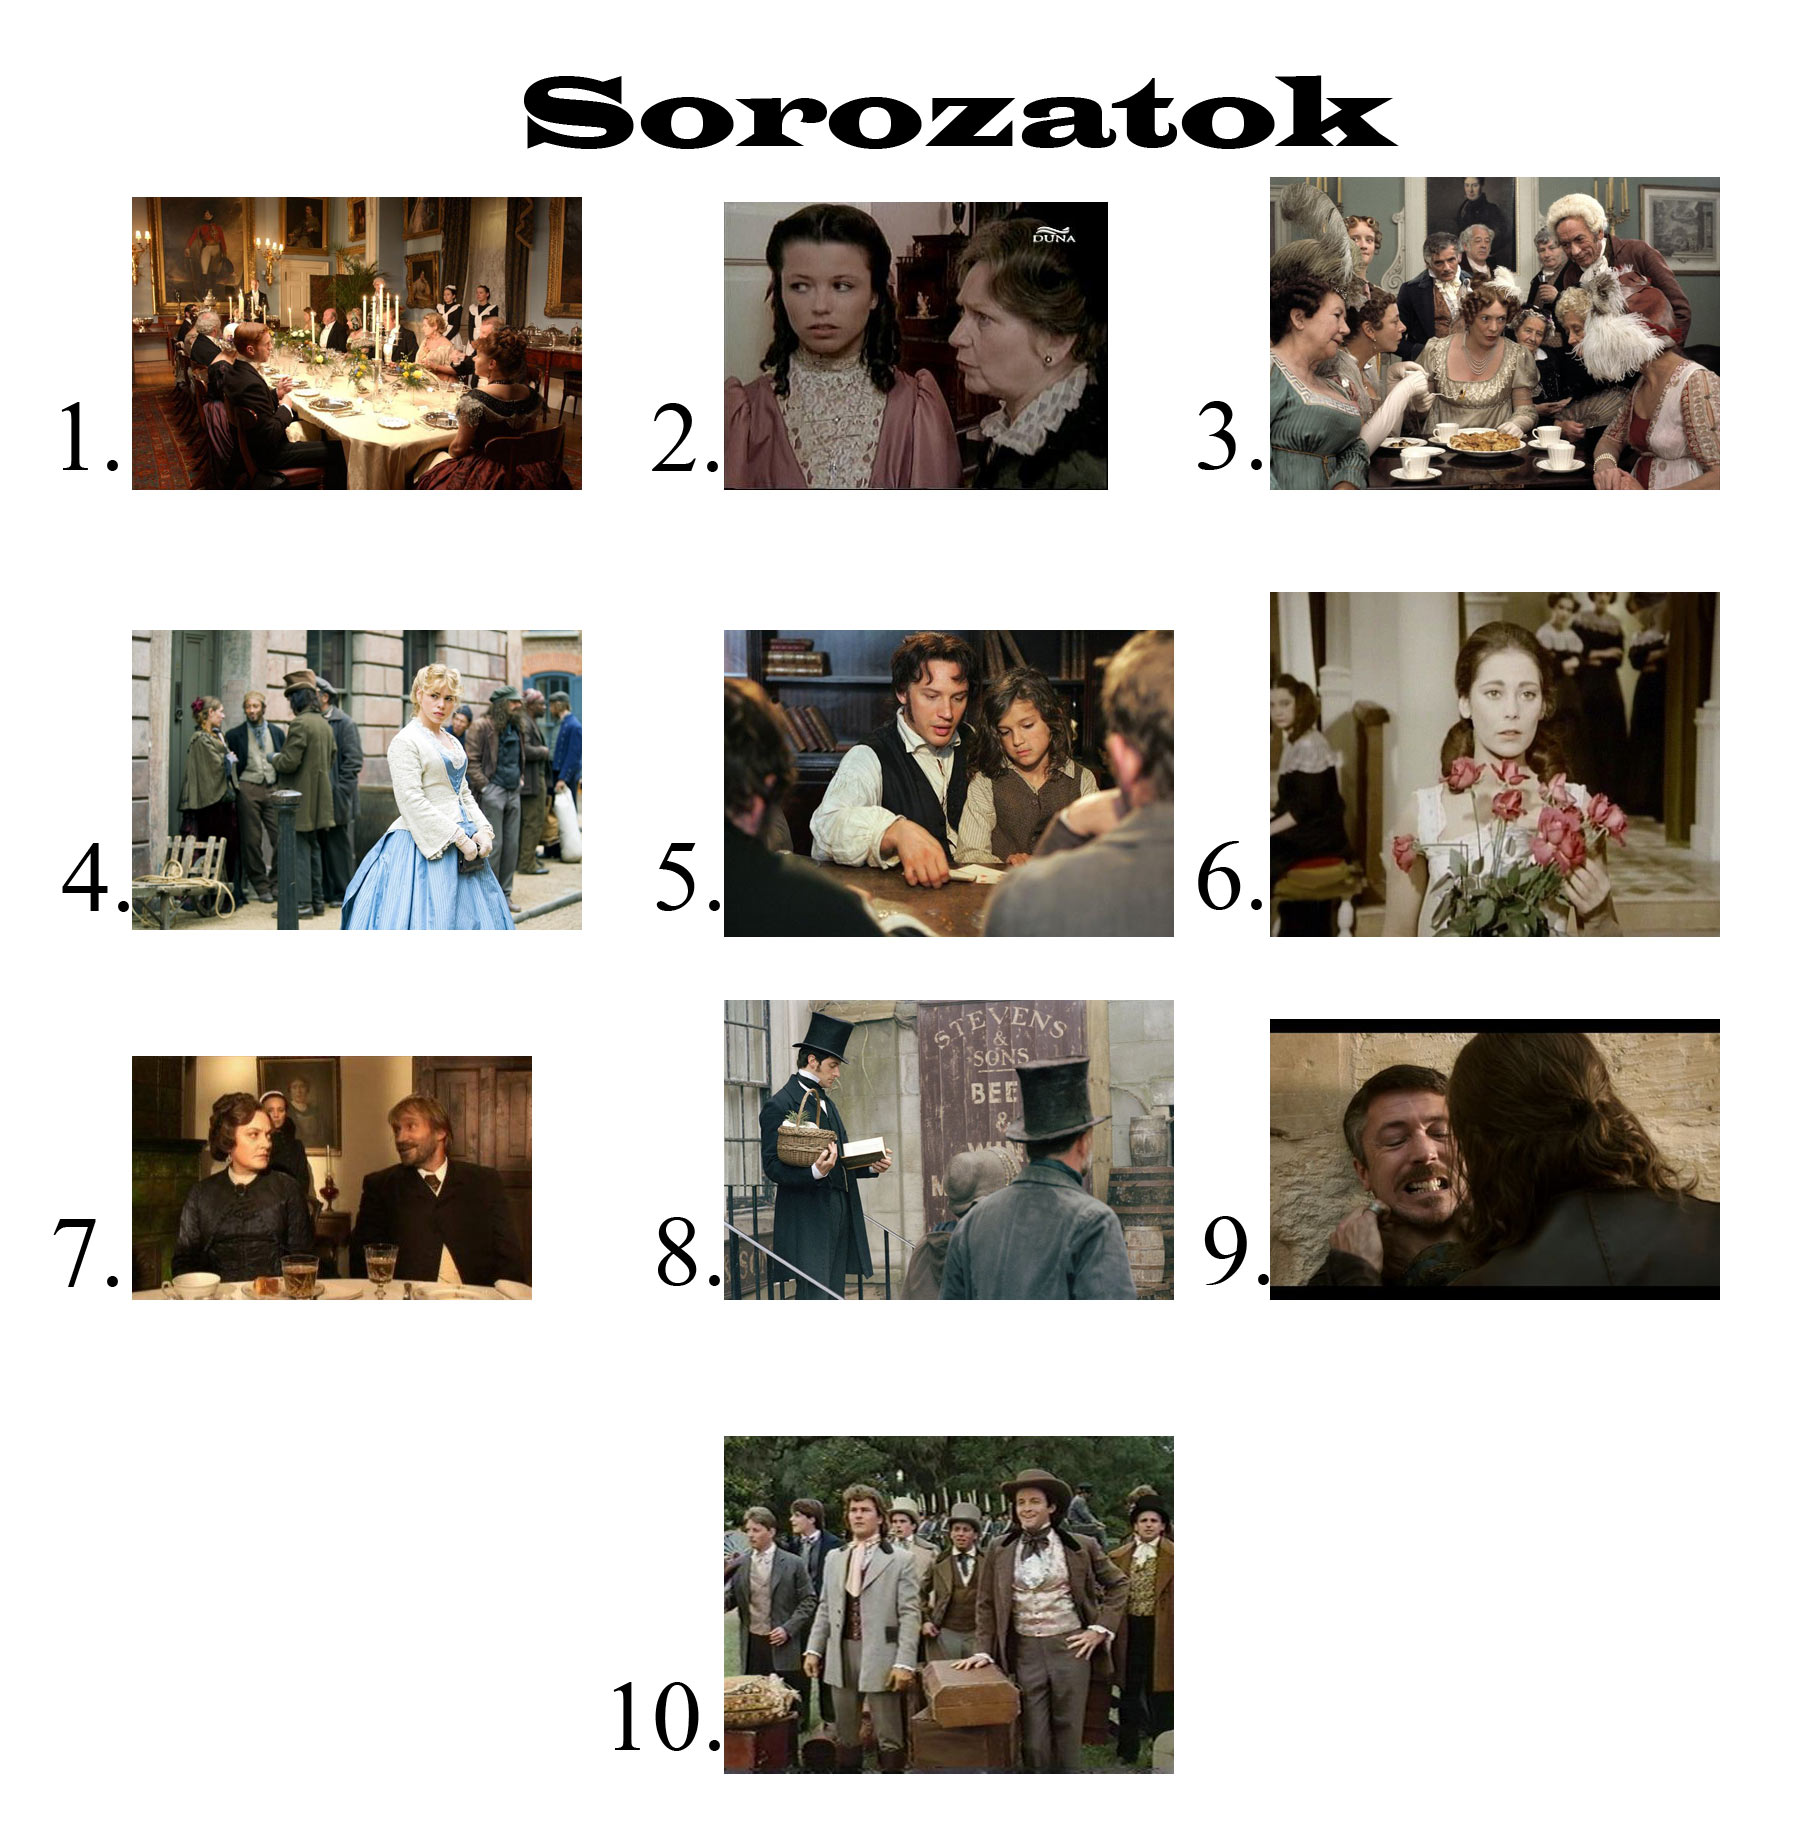 sorozatokall